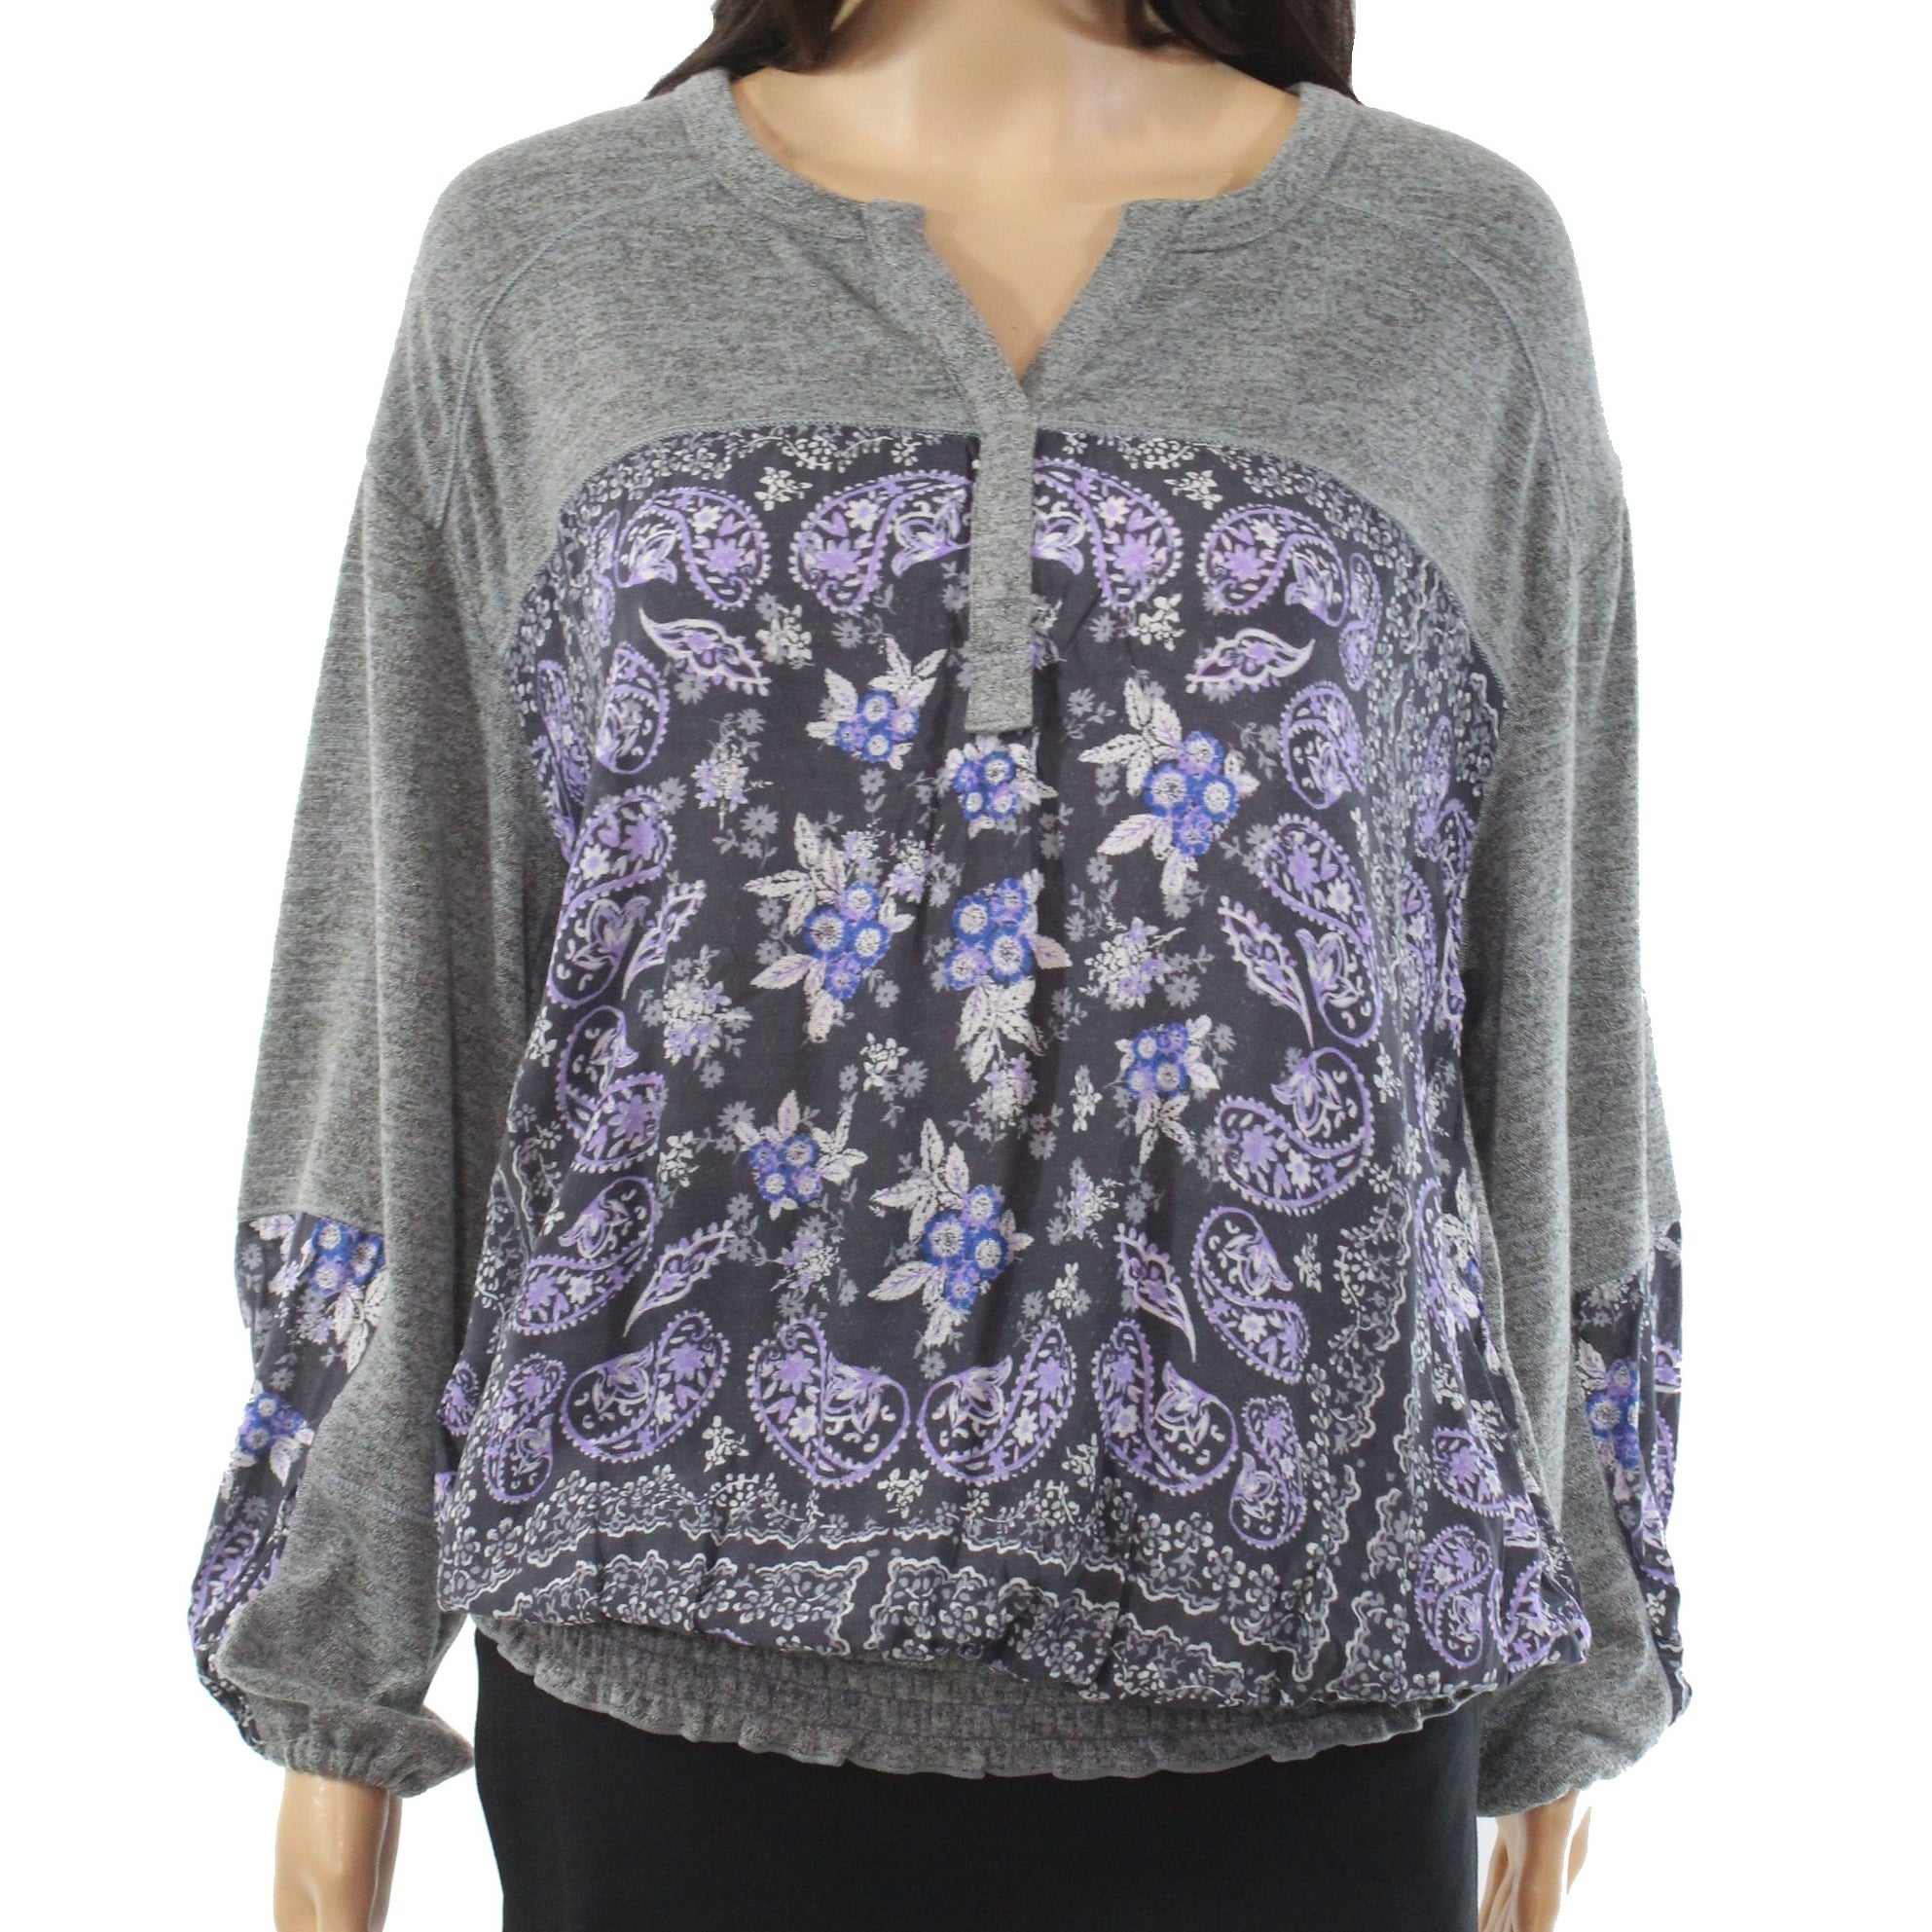 Womens Top Gray Size 1X Plus Paisley Smocked Split-Neck $59 316 Style /& Co